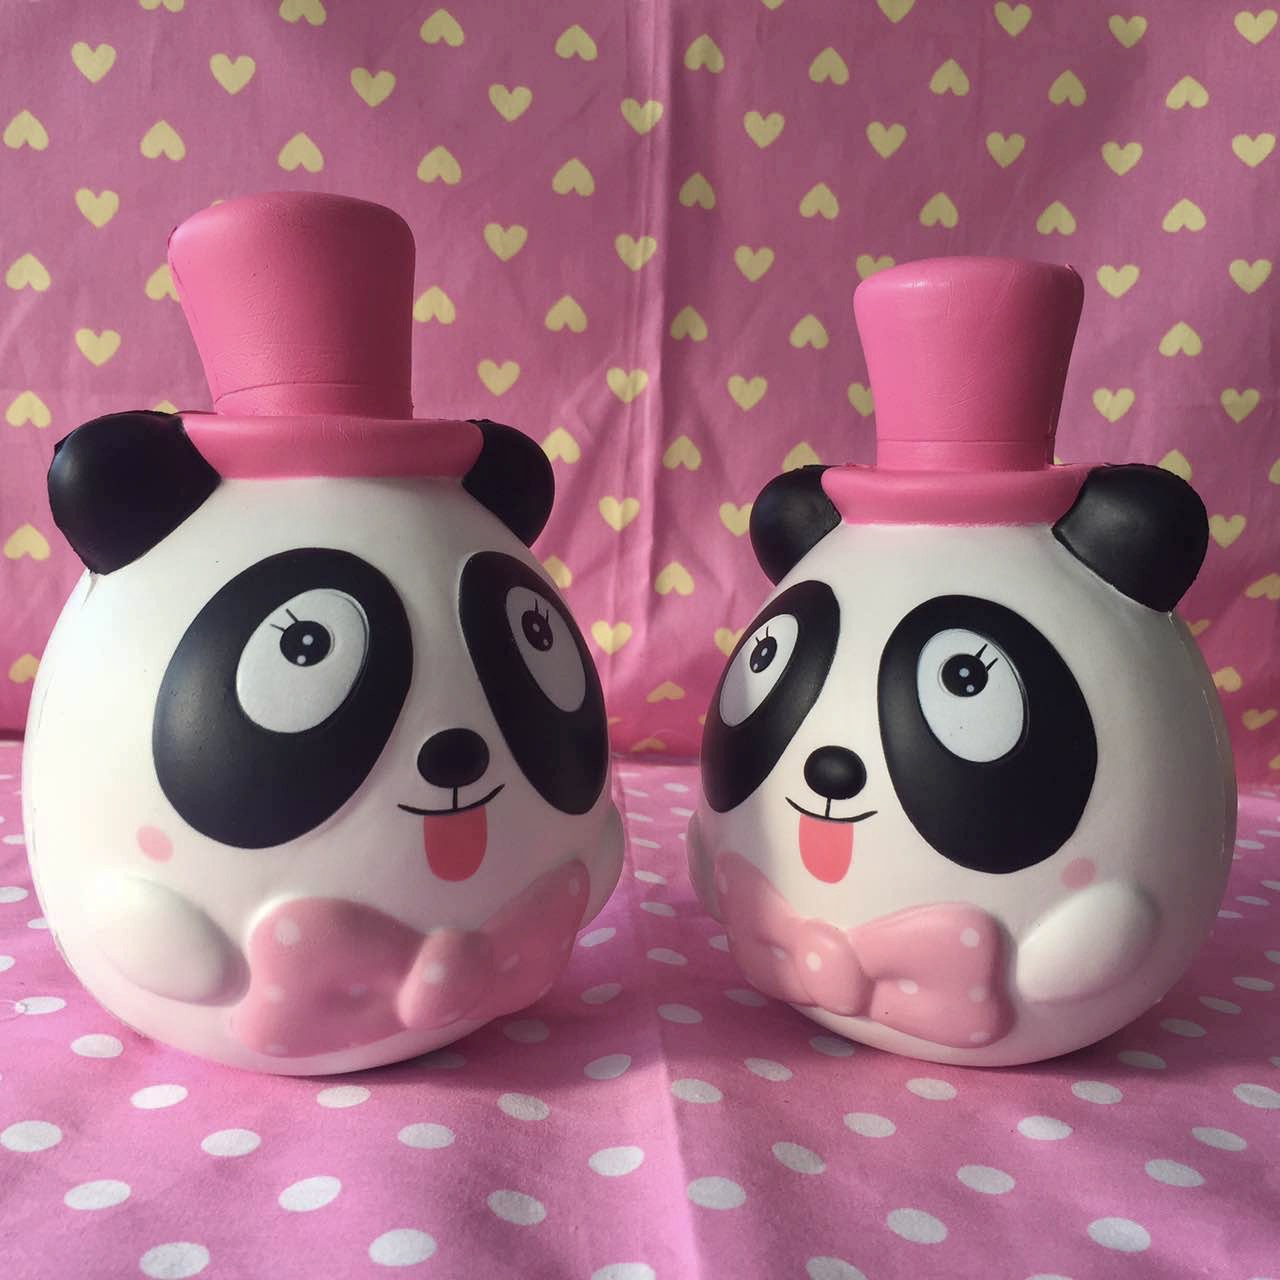 Lei lei pink top hat panda squishy (mega sale ...